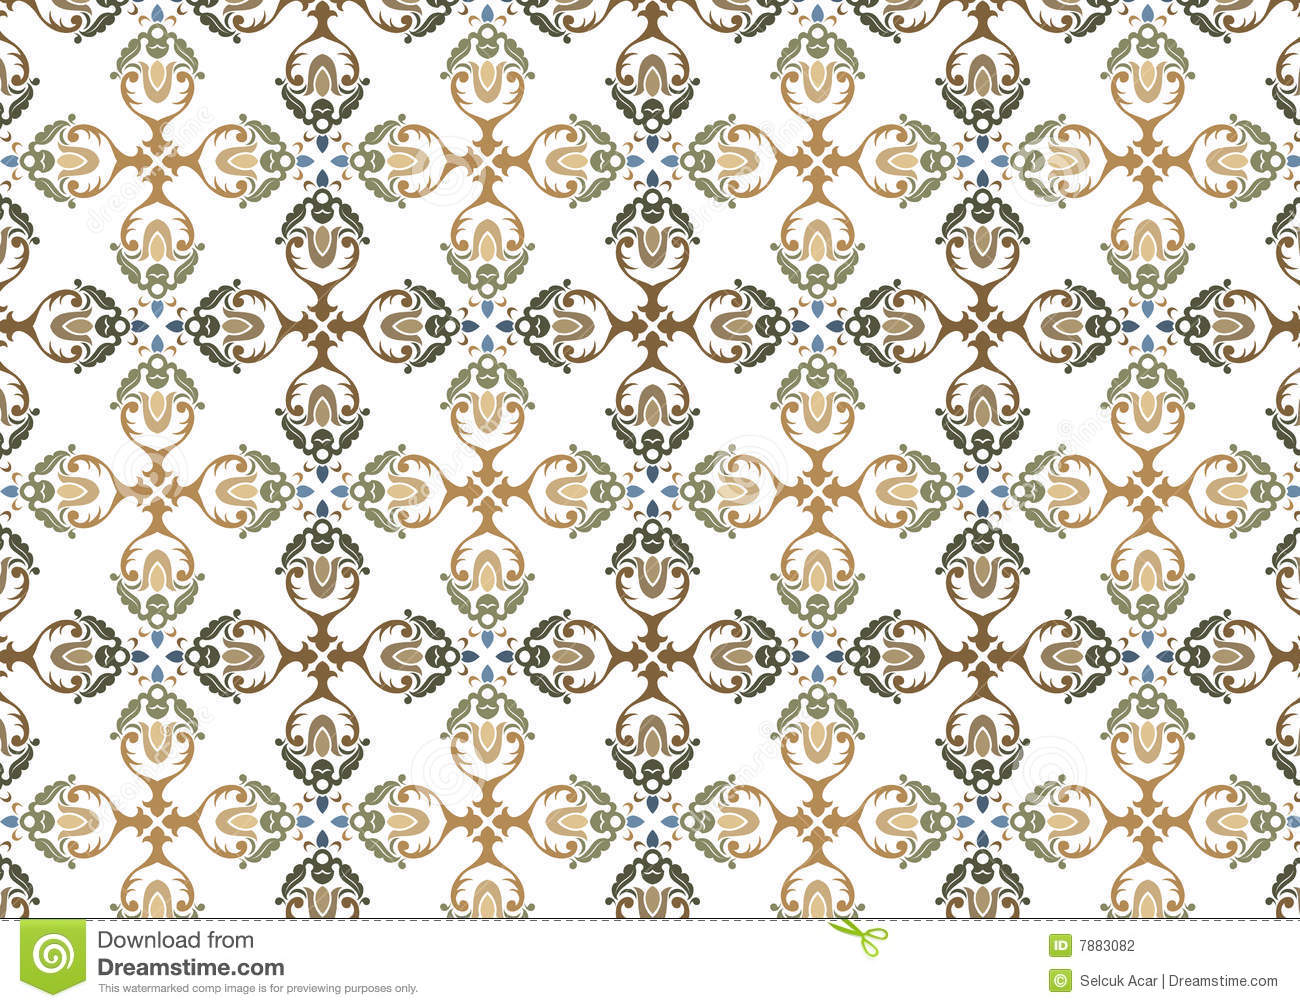 Decorative wallpaper design stock photography image 7883082 - Decoratie wallpaper eetkamer ...